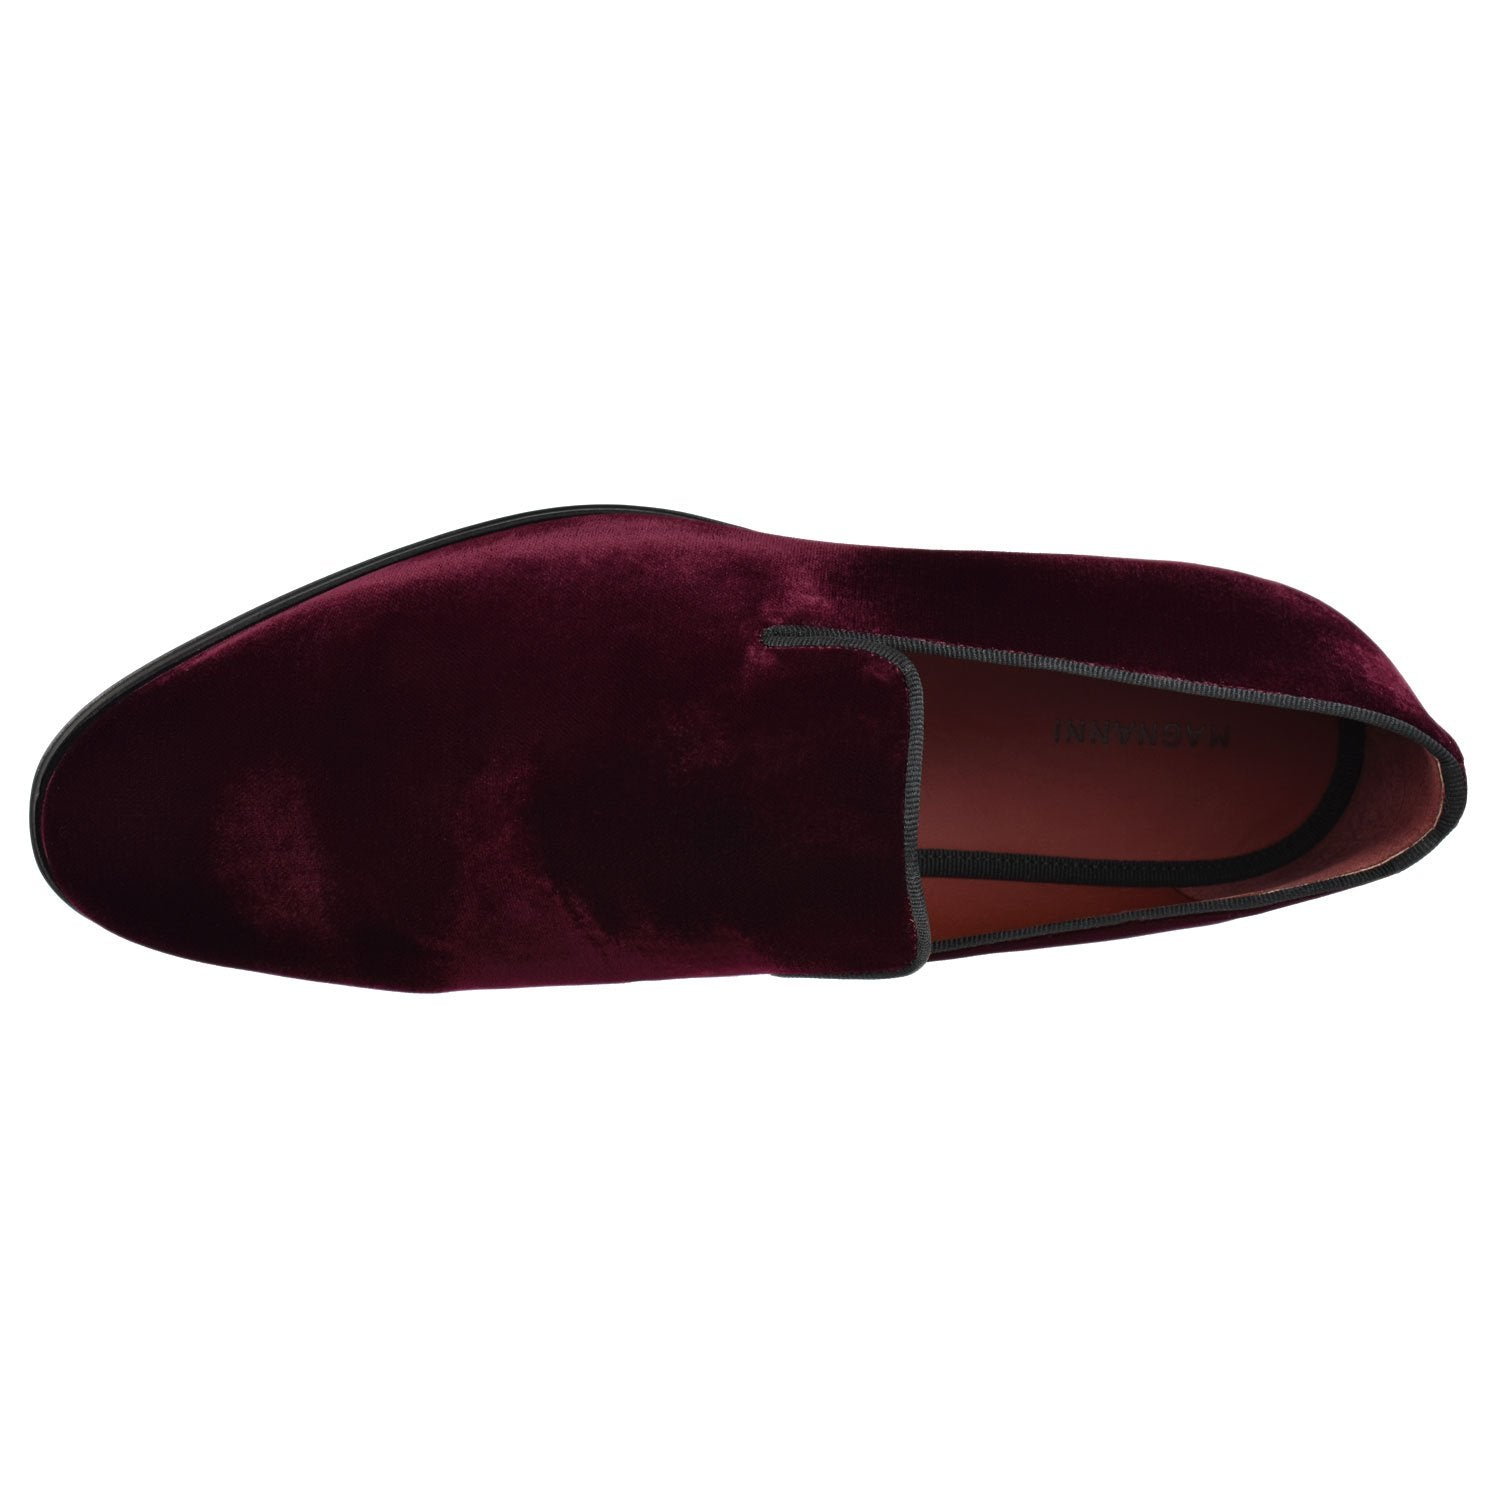 Men's Dorio Formal Velvet Loafer - Oak Hall